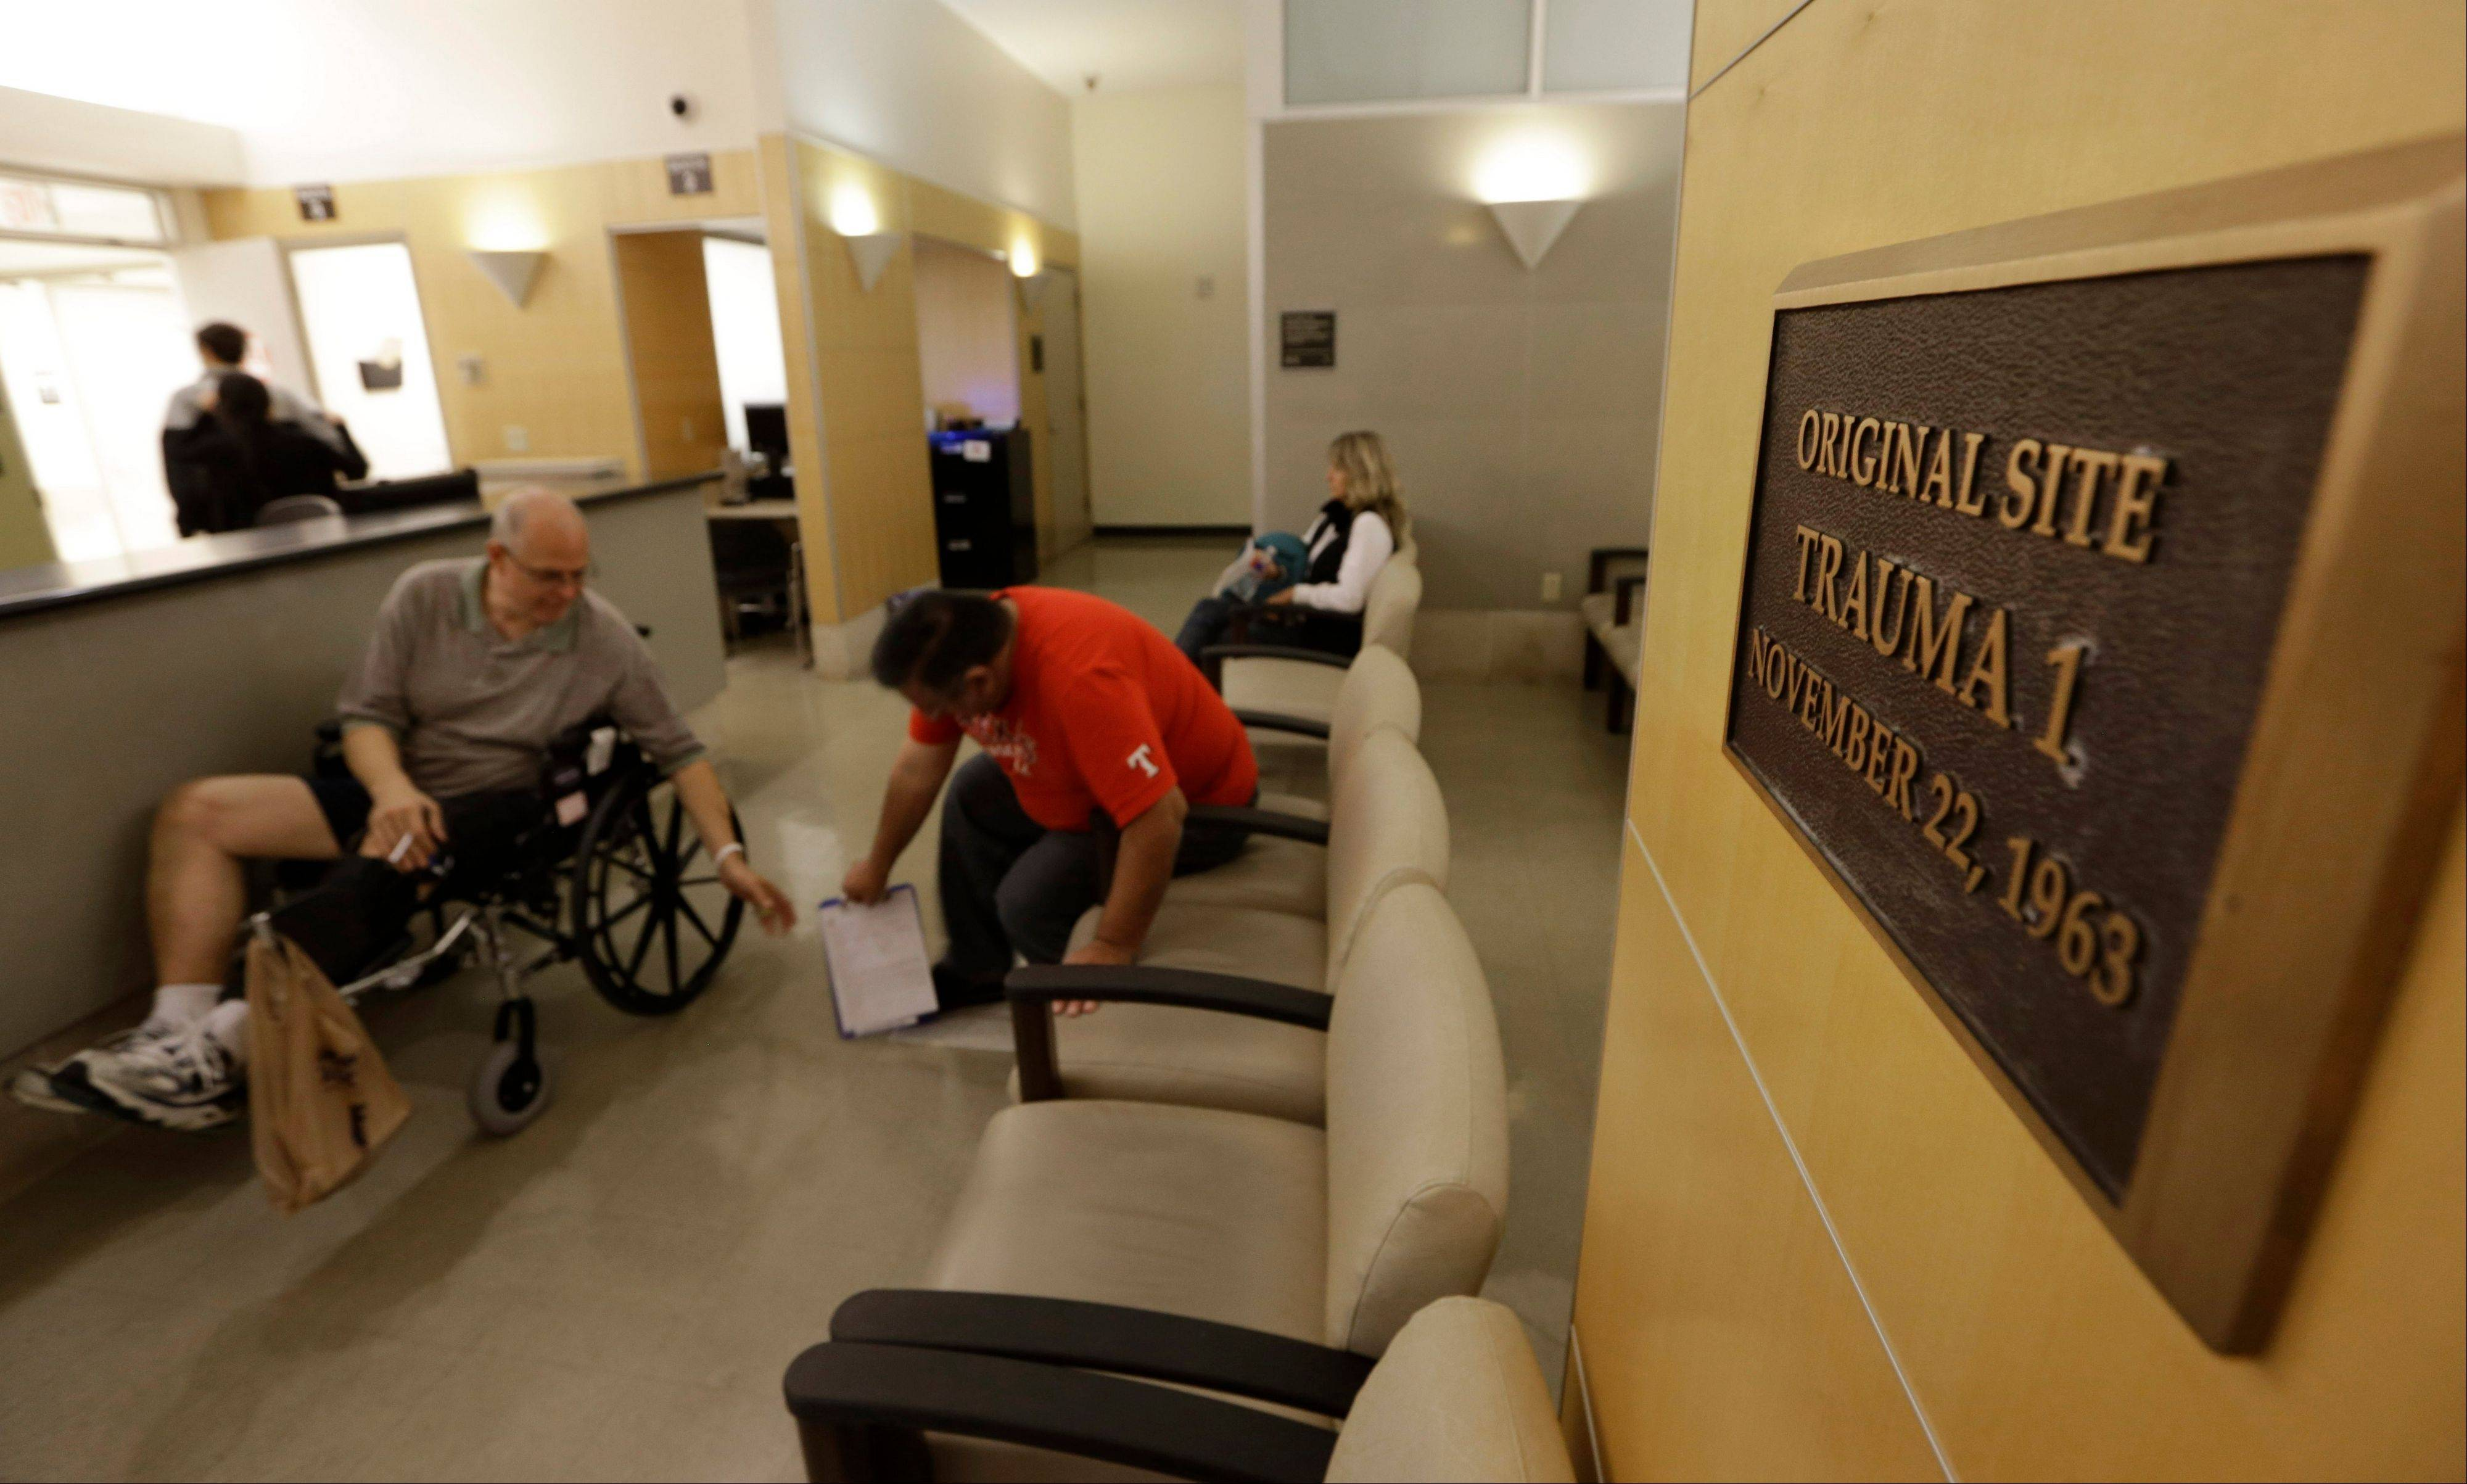 A plaque marks the original site of Trauma Room 1 where doctors rushed to treat mortally wounded President John F. Kennedy at Parkland Memorial Hospital in Dallas. The room is now the radiology department at the hospital.